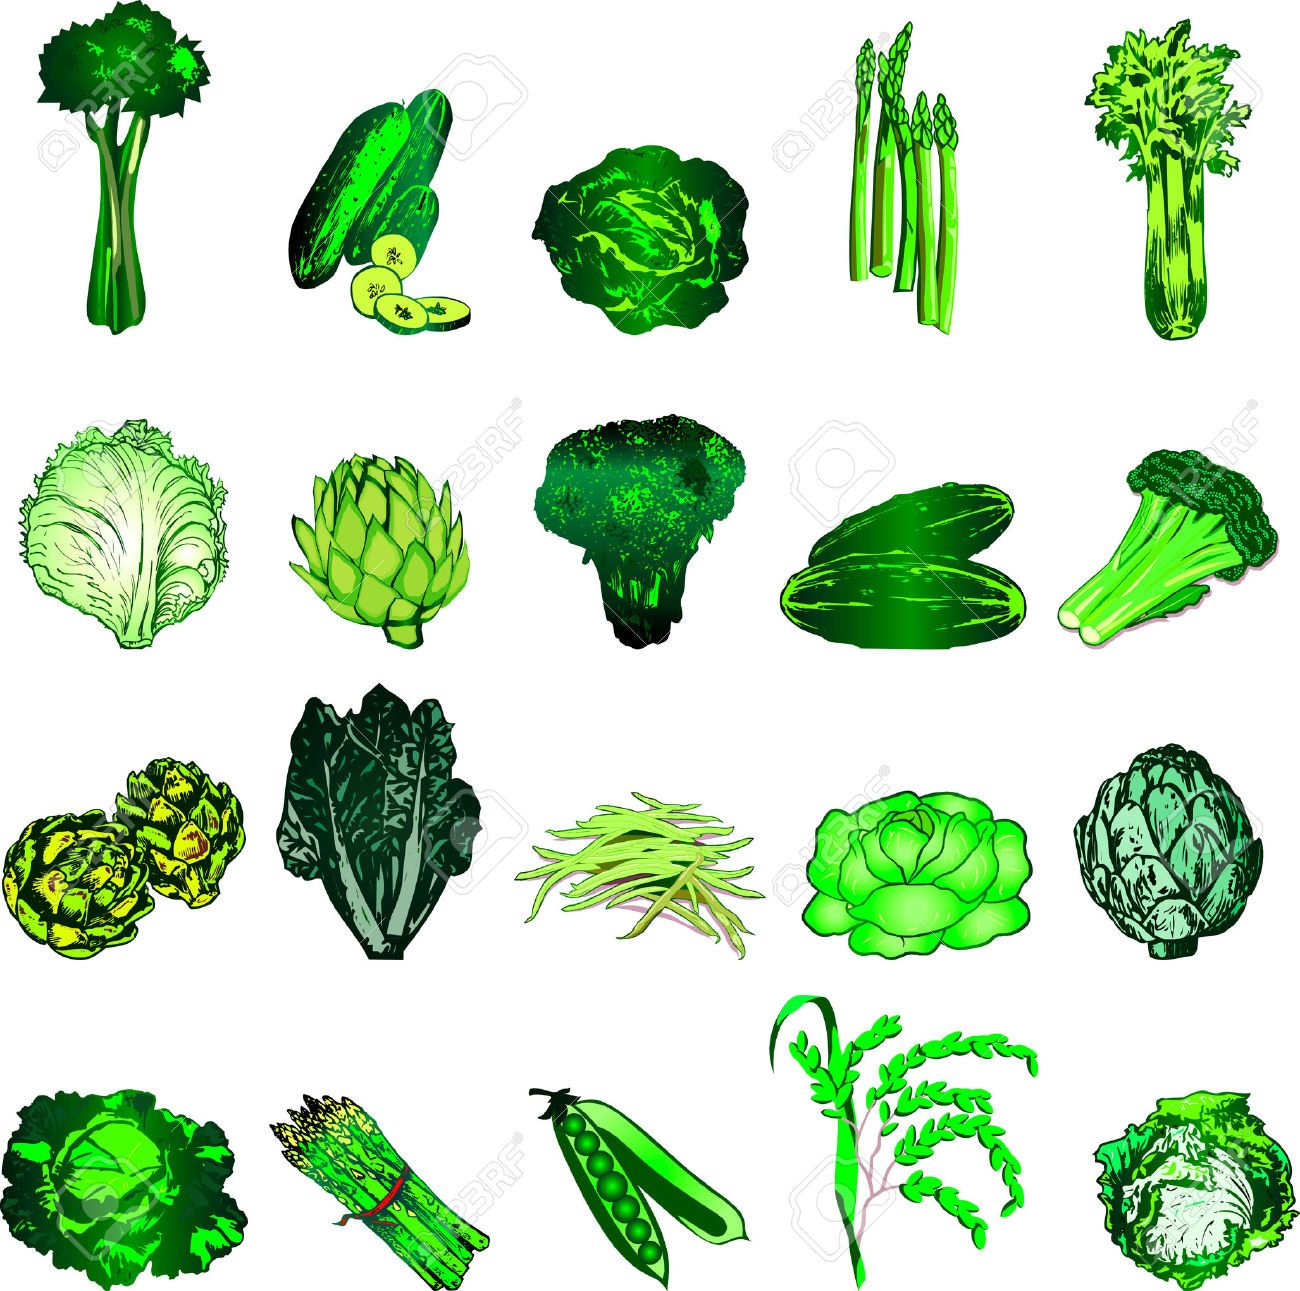 Leafy green clipart picture library Green leafy vegetables clipart 5 » Clipart Portal picture library